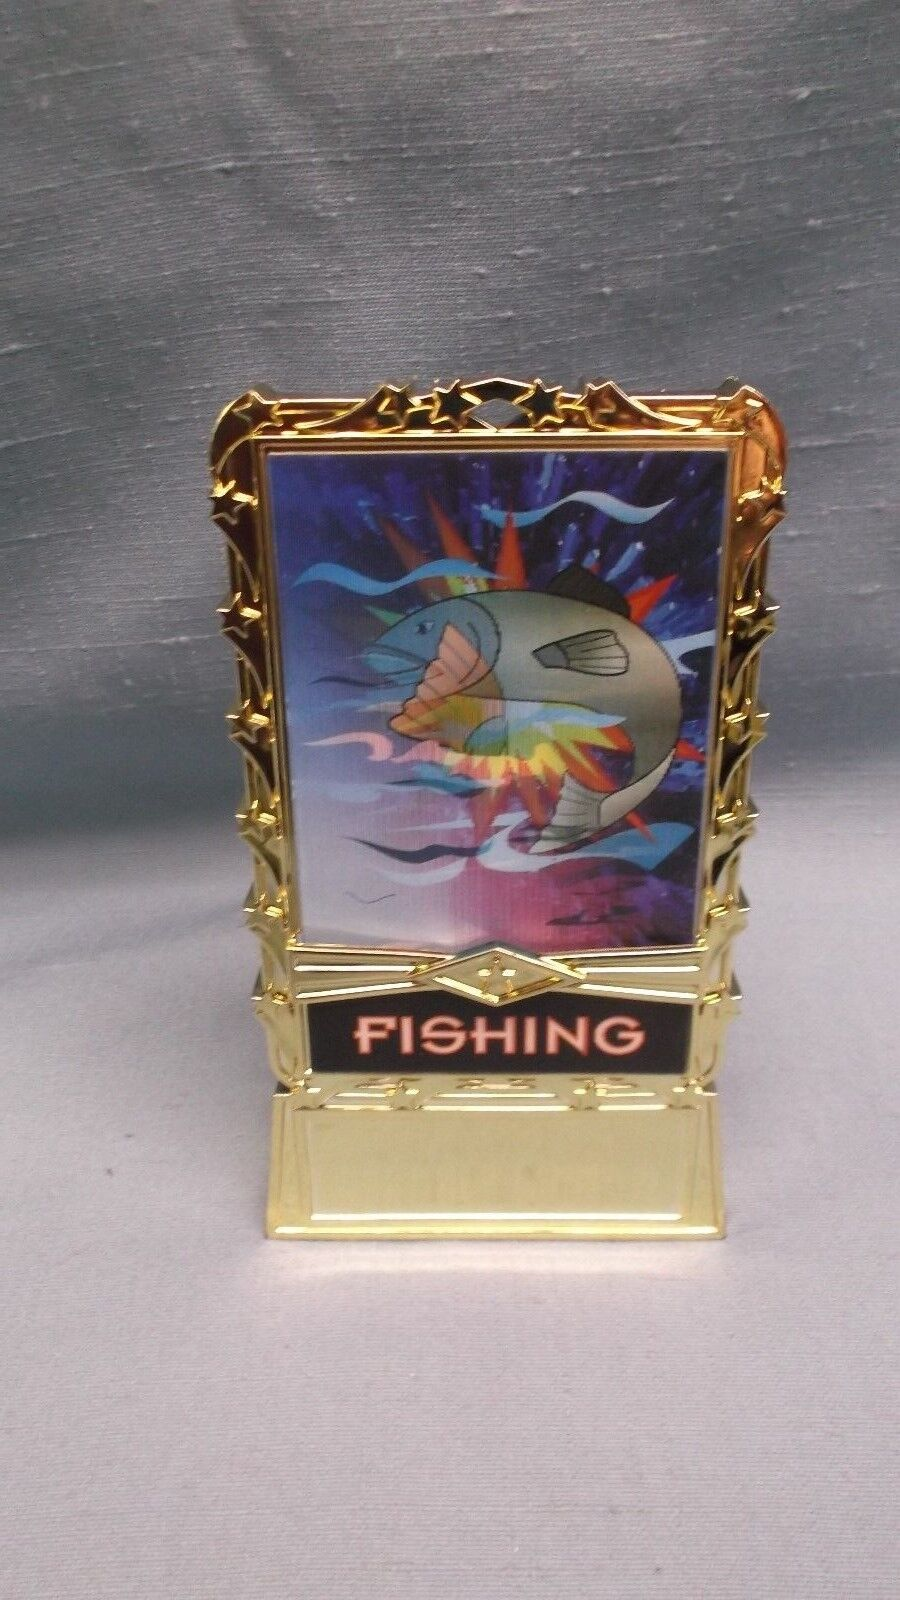 Lot of 25 FISH full Coloreeeee hologram insert trophies weighted base